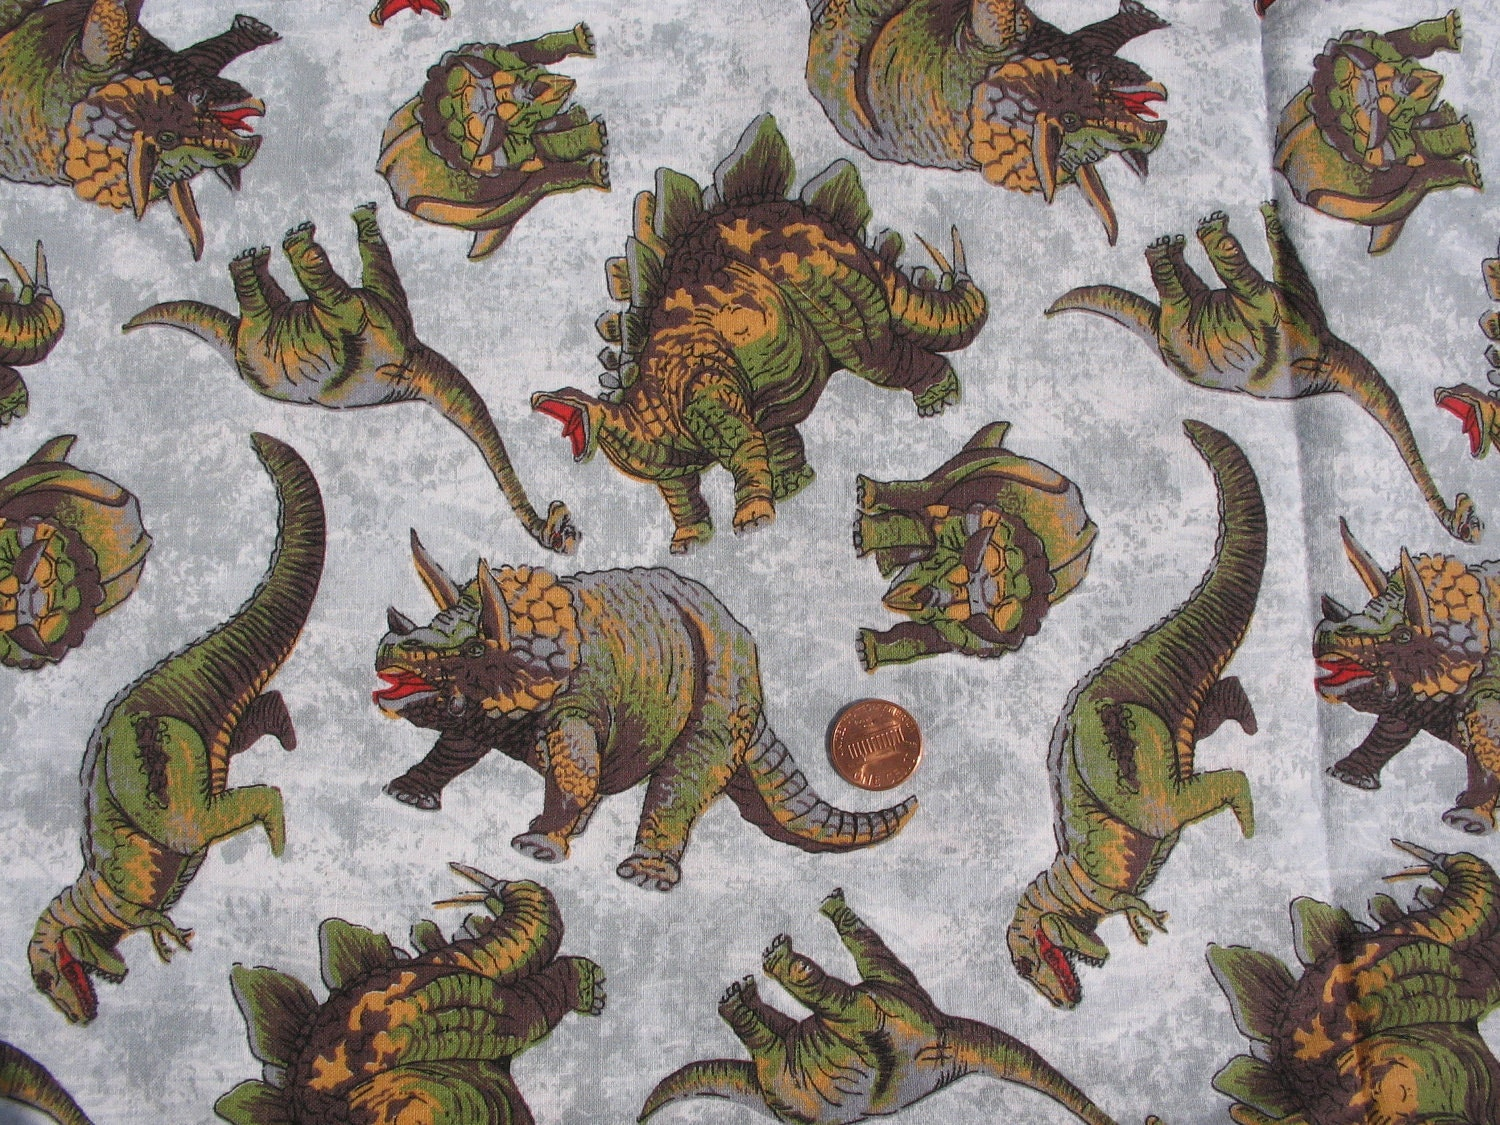 Vintage animal print half yard 1980s dinosaur fabric for Vintage childrens fabric by the yard